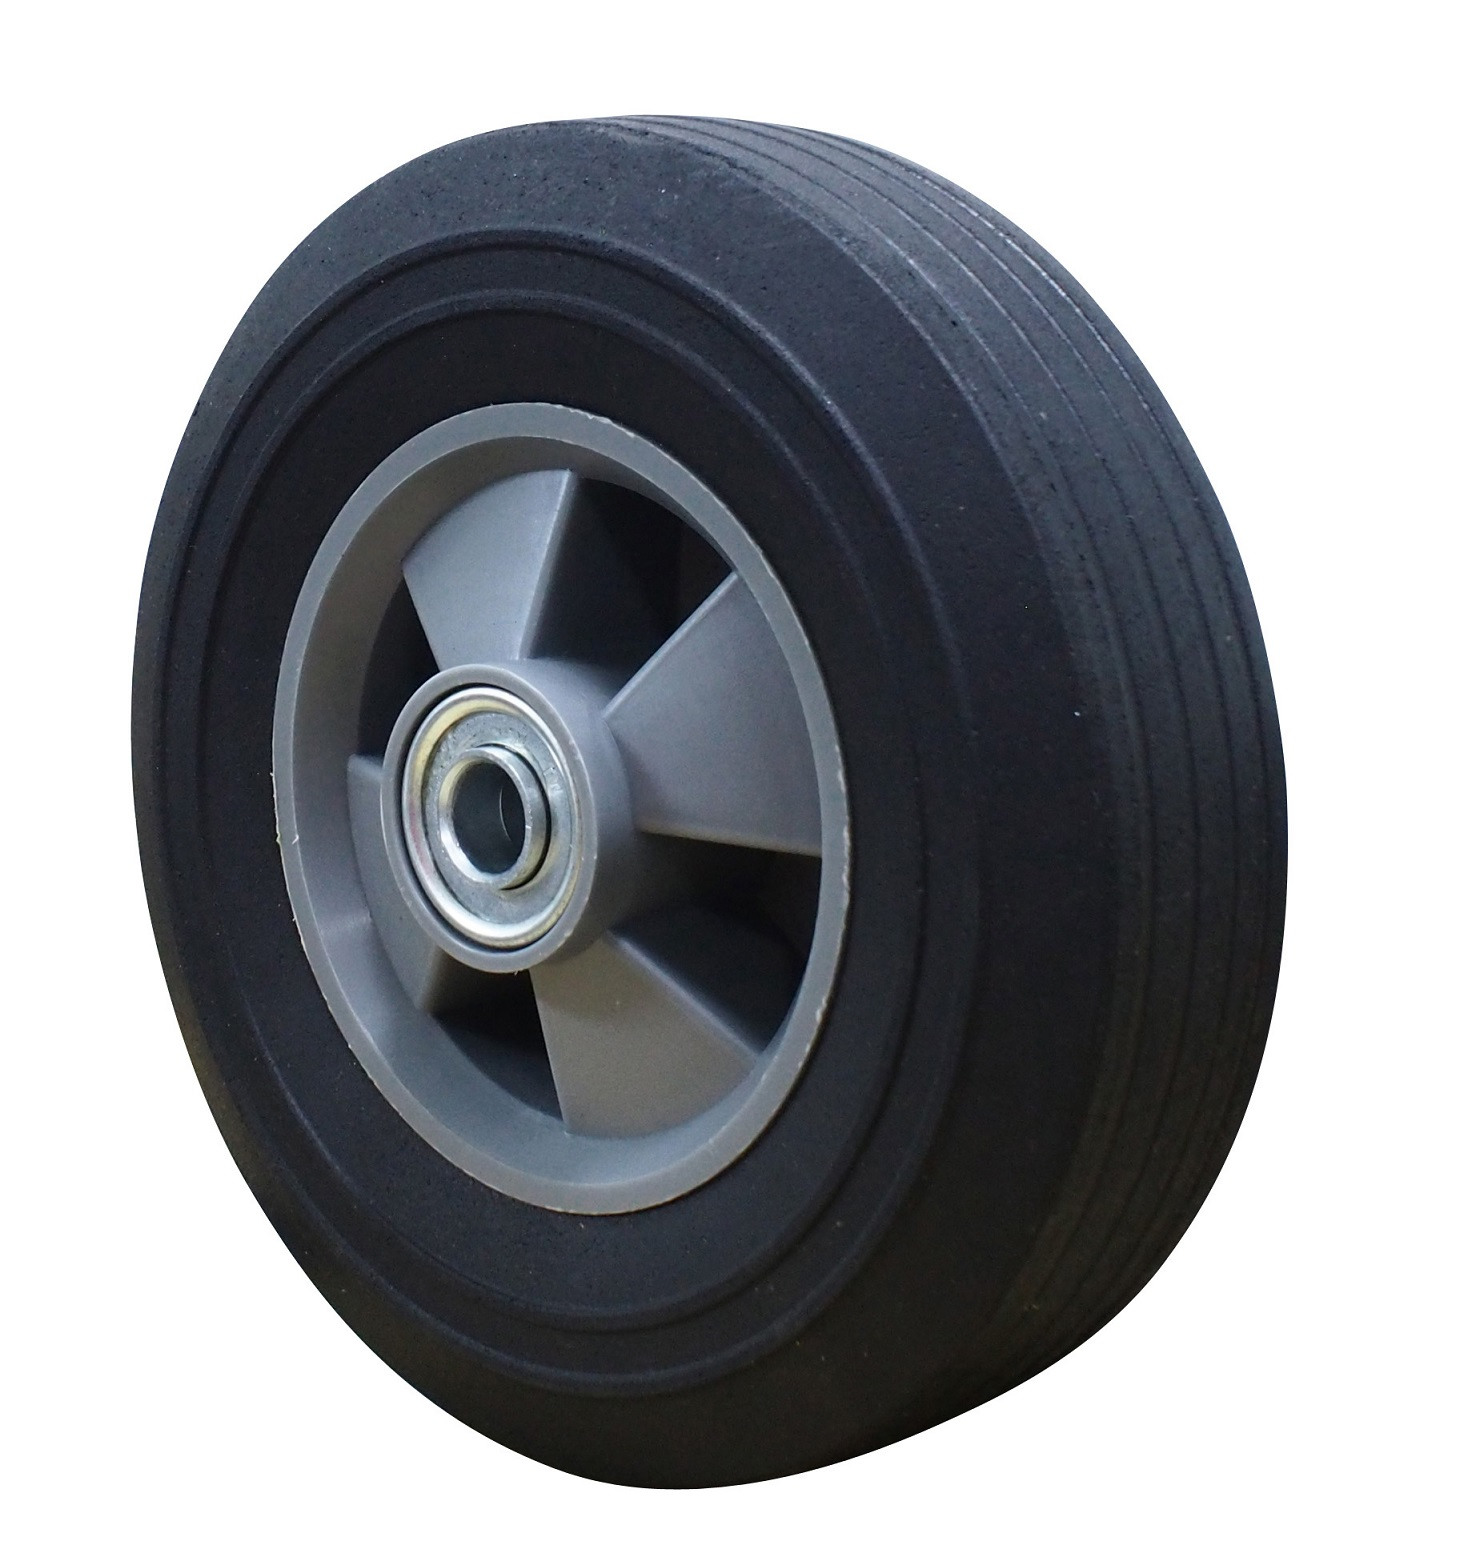 Solid Rubber 10 inch Tires